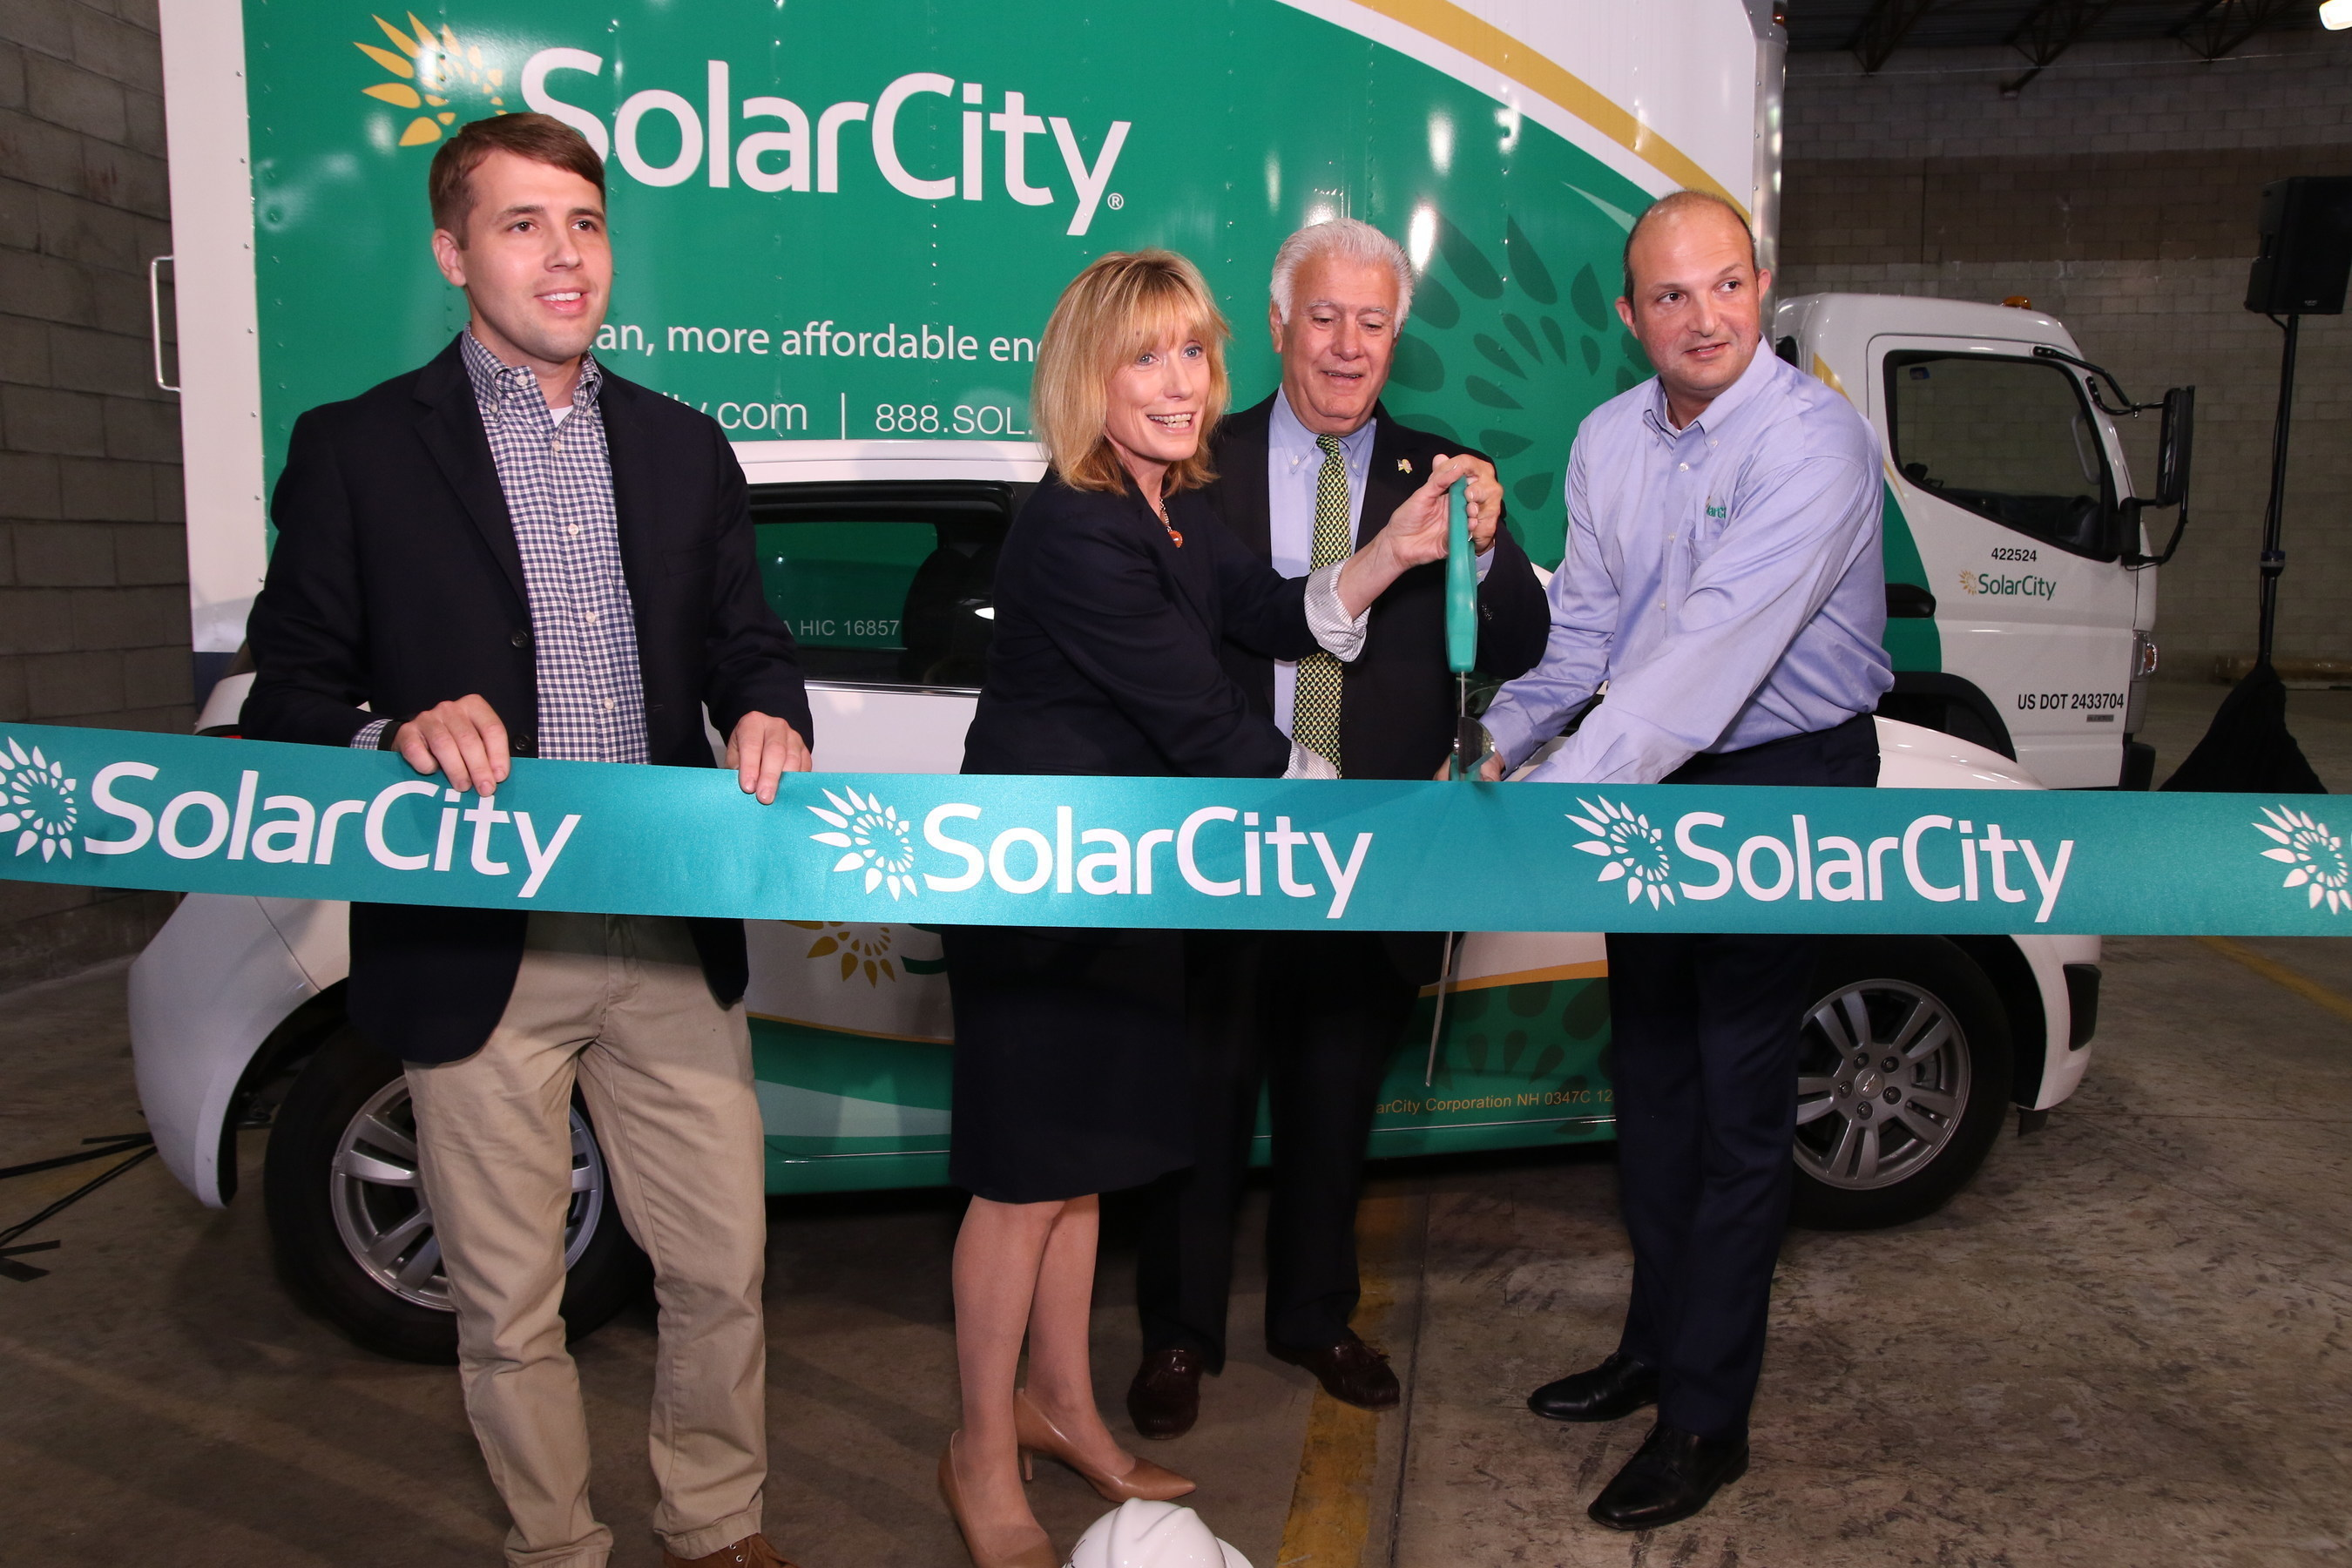 Governor Hassan on Hand to Celebrate SolarCity's First New Hampshire Operations Center